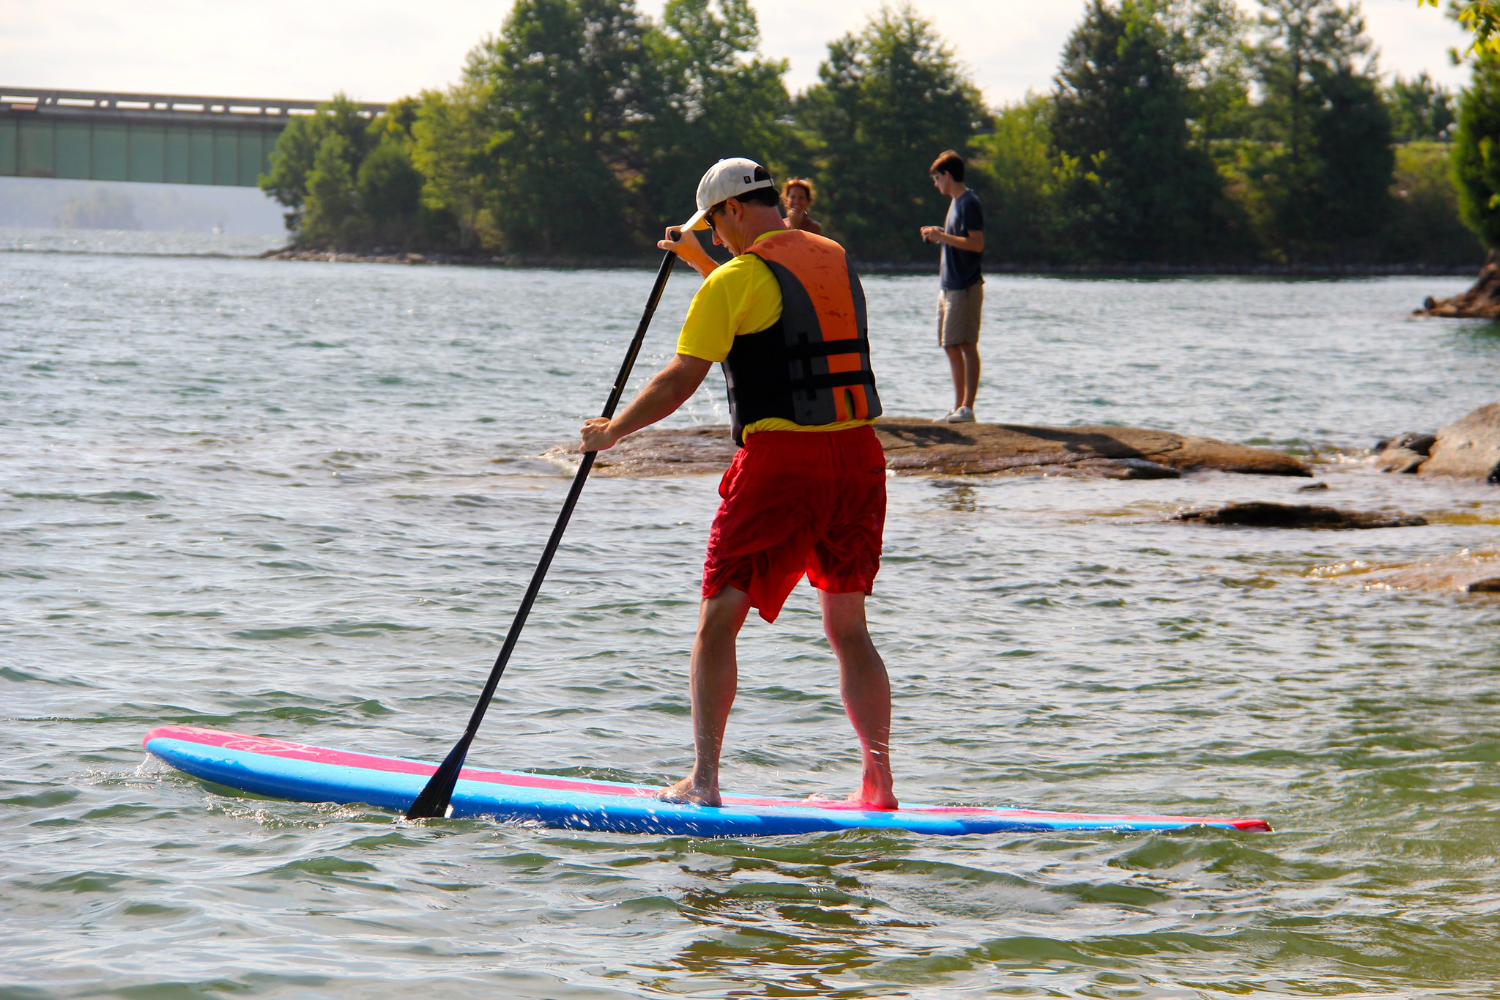 stand up paddle boarder on lake